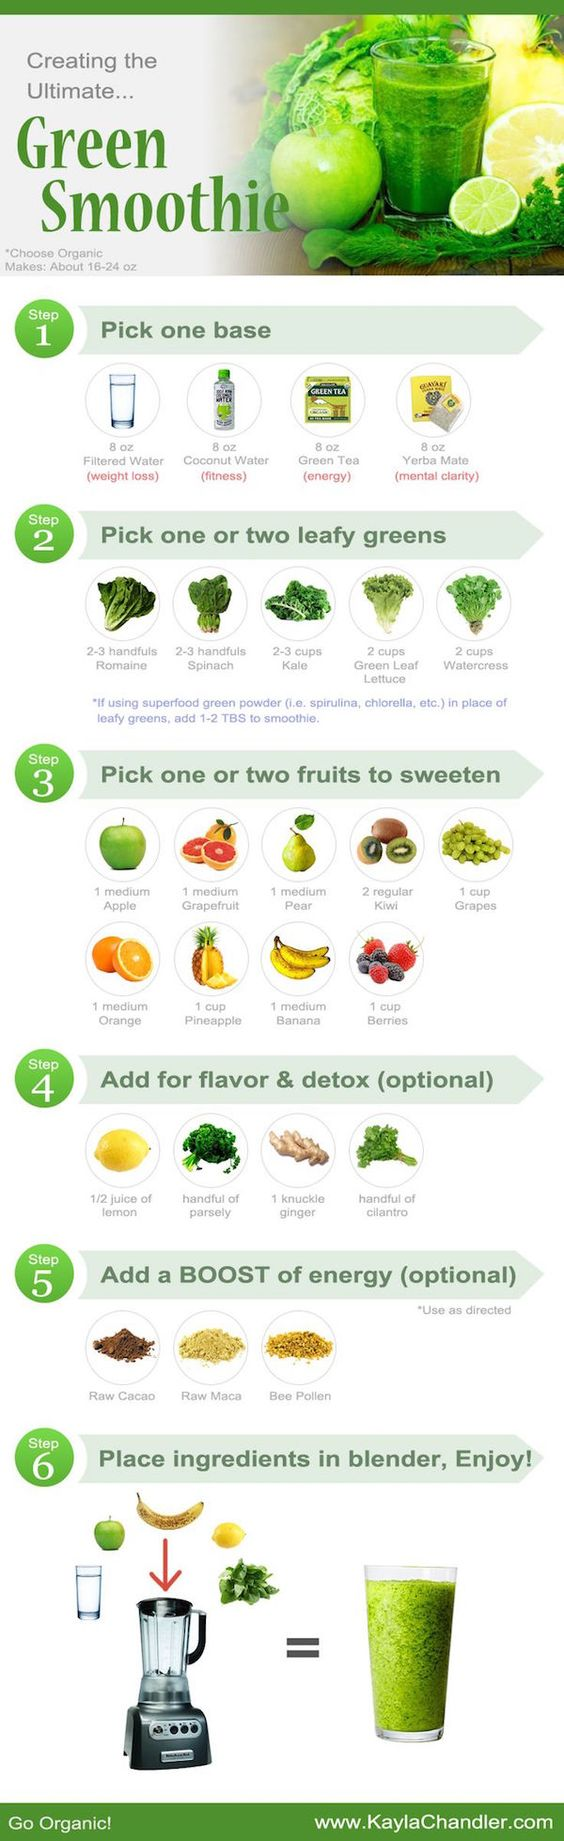 Image 7 9 - The All In One Guide To Making A Green Smoothie